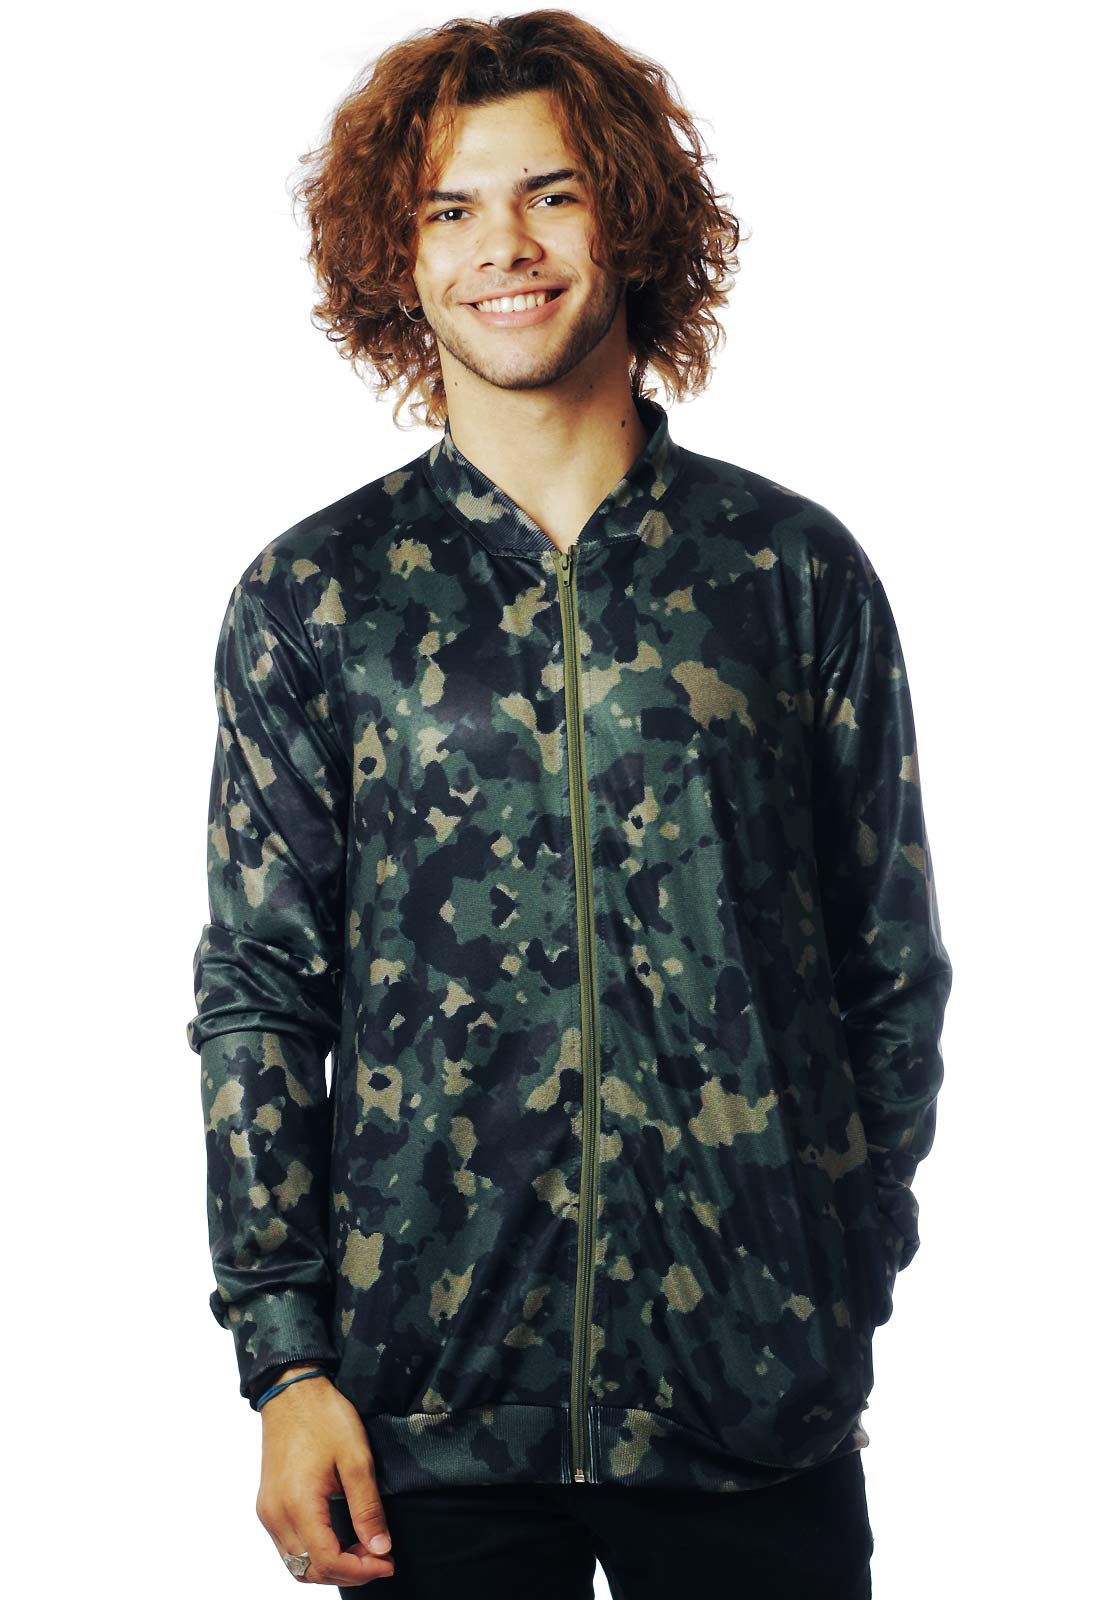 JAQUETA BOMBER CAMUFLADA ESTAMPADA FULL PRINT UNISSEX WRONG BITCH